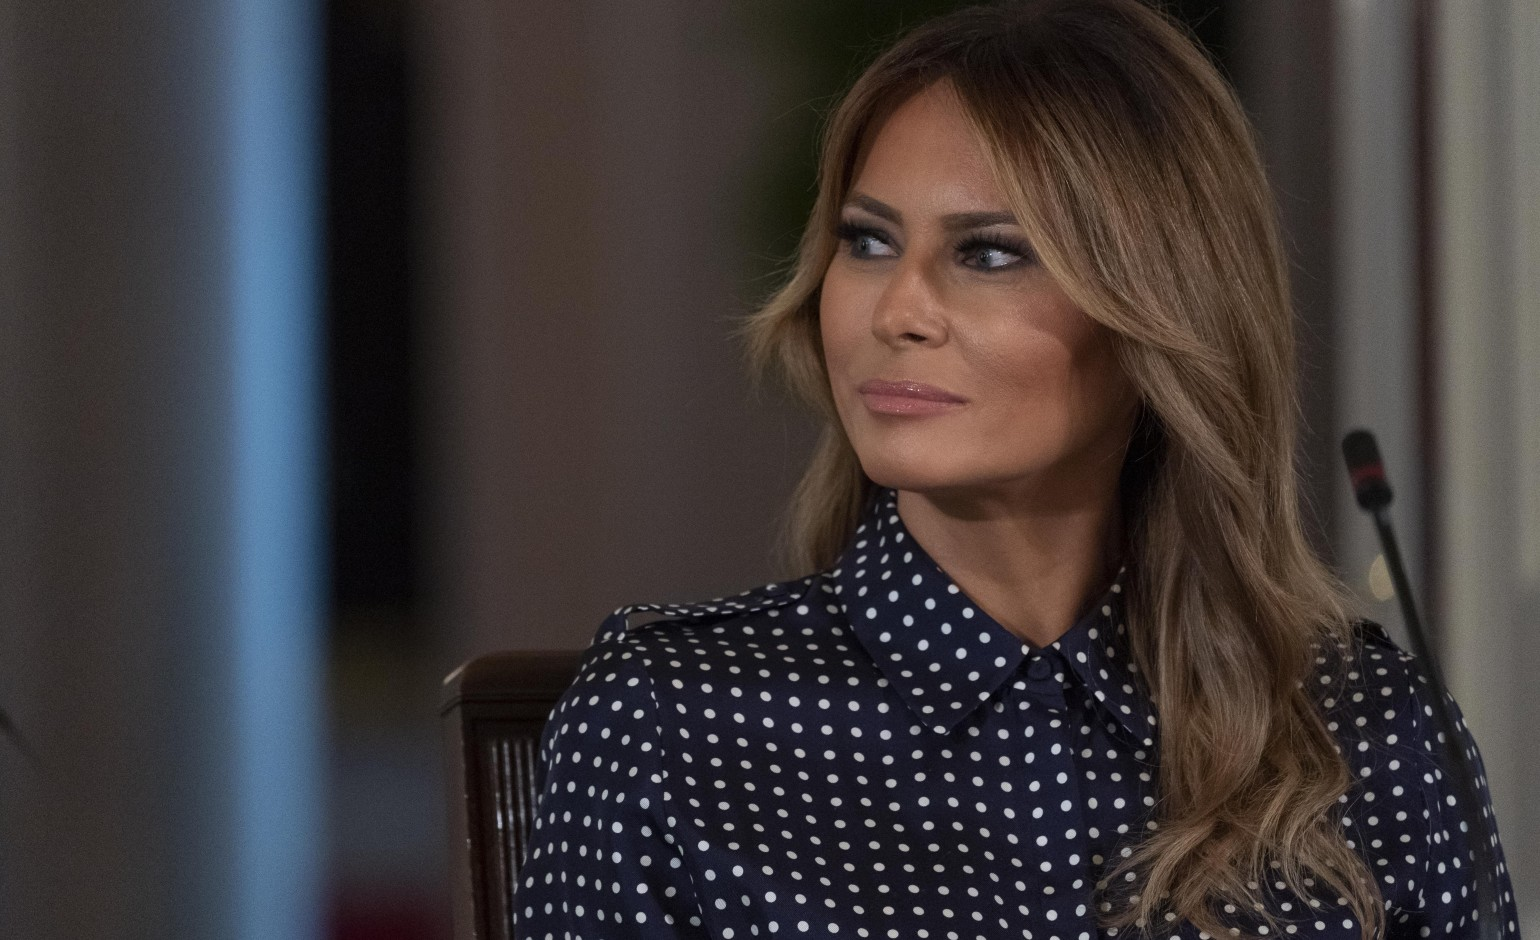 Media go after Melania